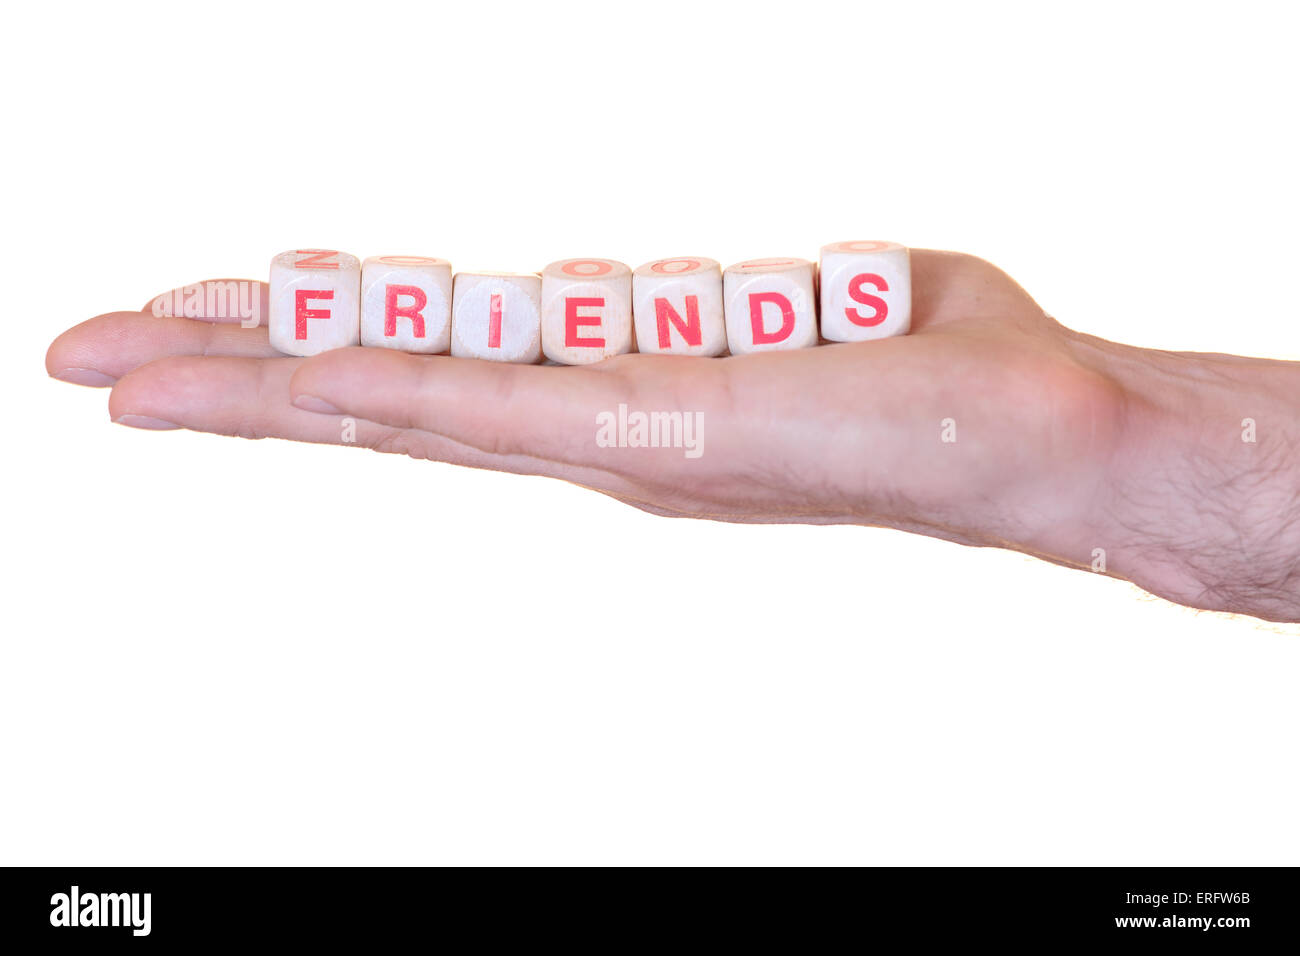 The word friends written with wooden dice on the he palm of the hand. Isolated on white background - Stock Image